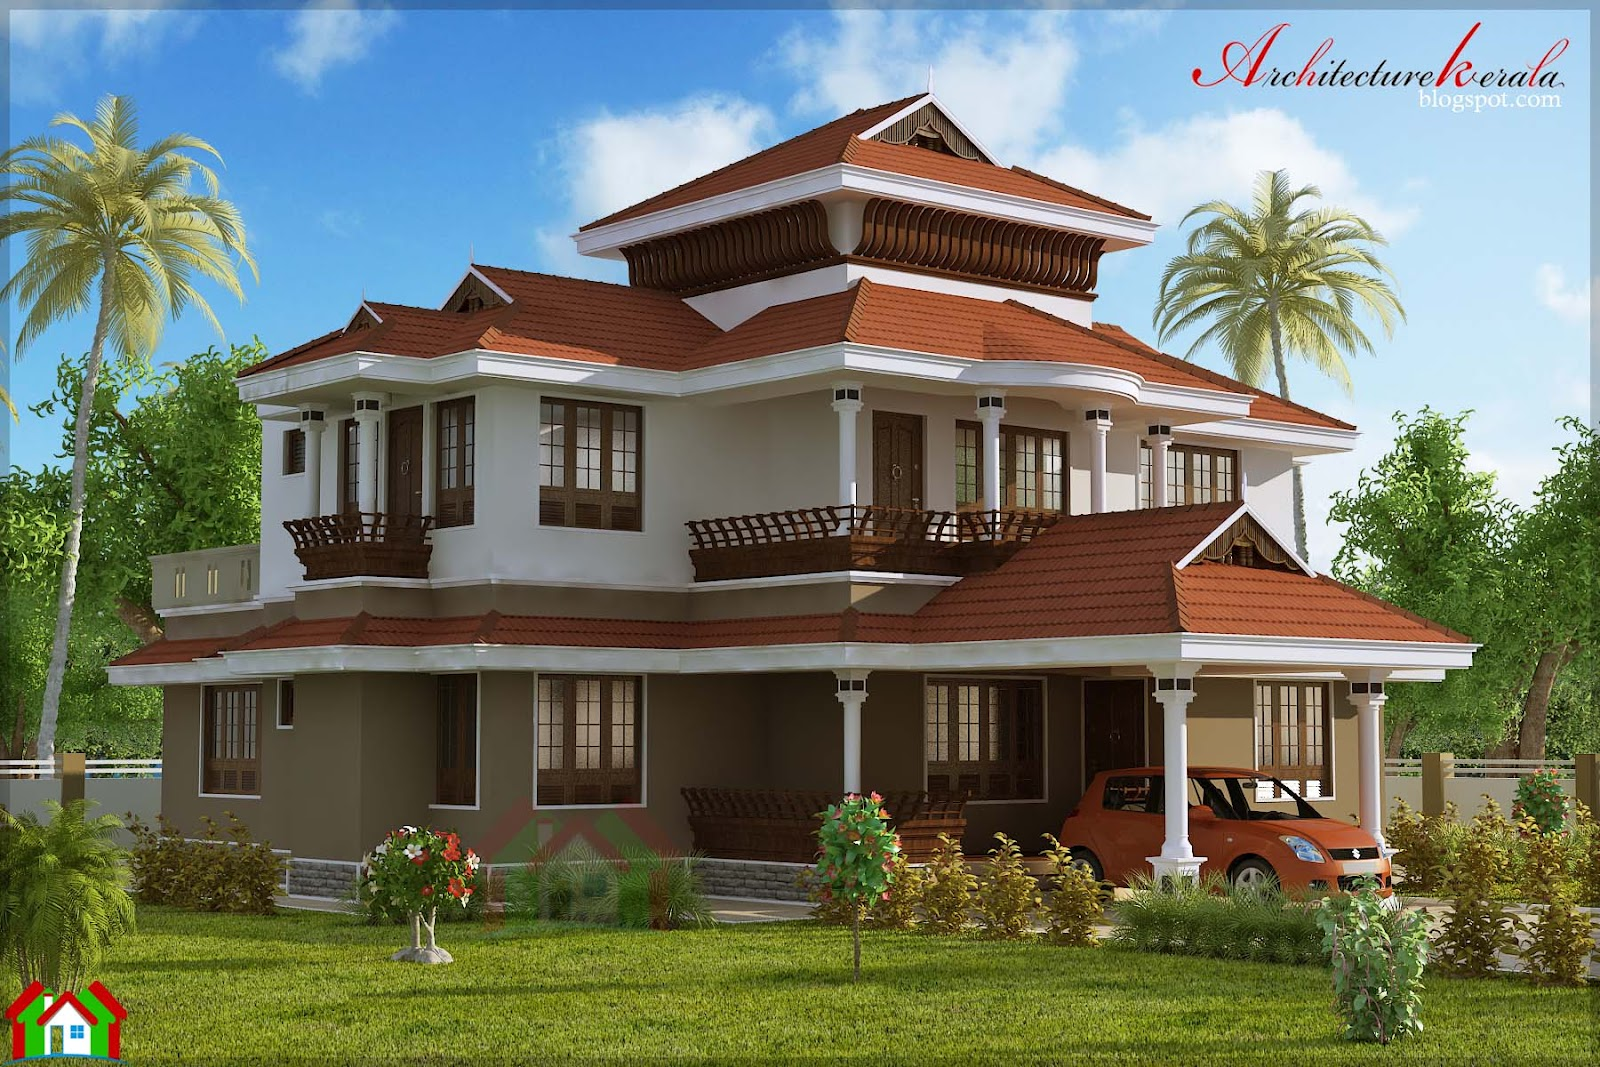 4 bed room traditional style house architecture kerala for Home designs kerala architects